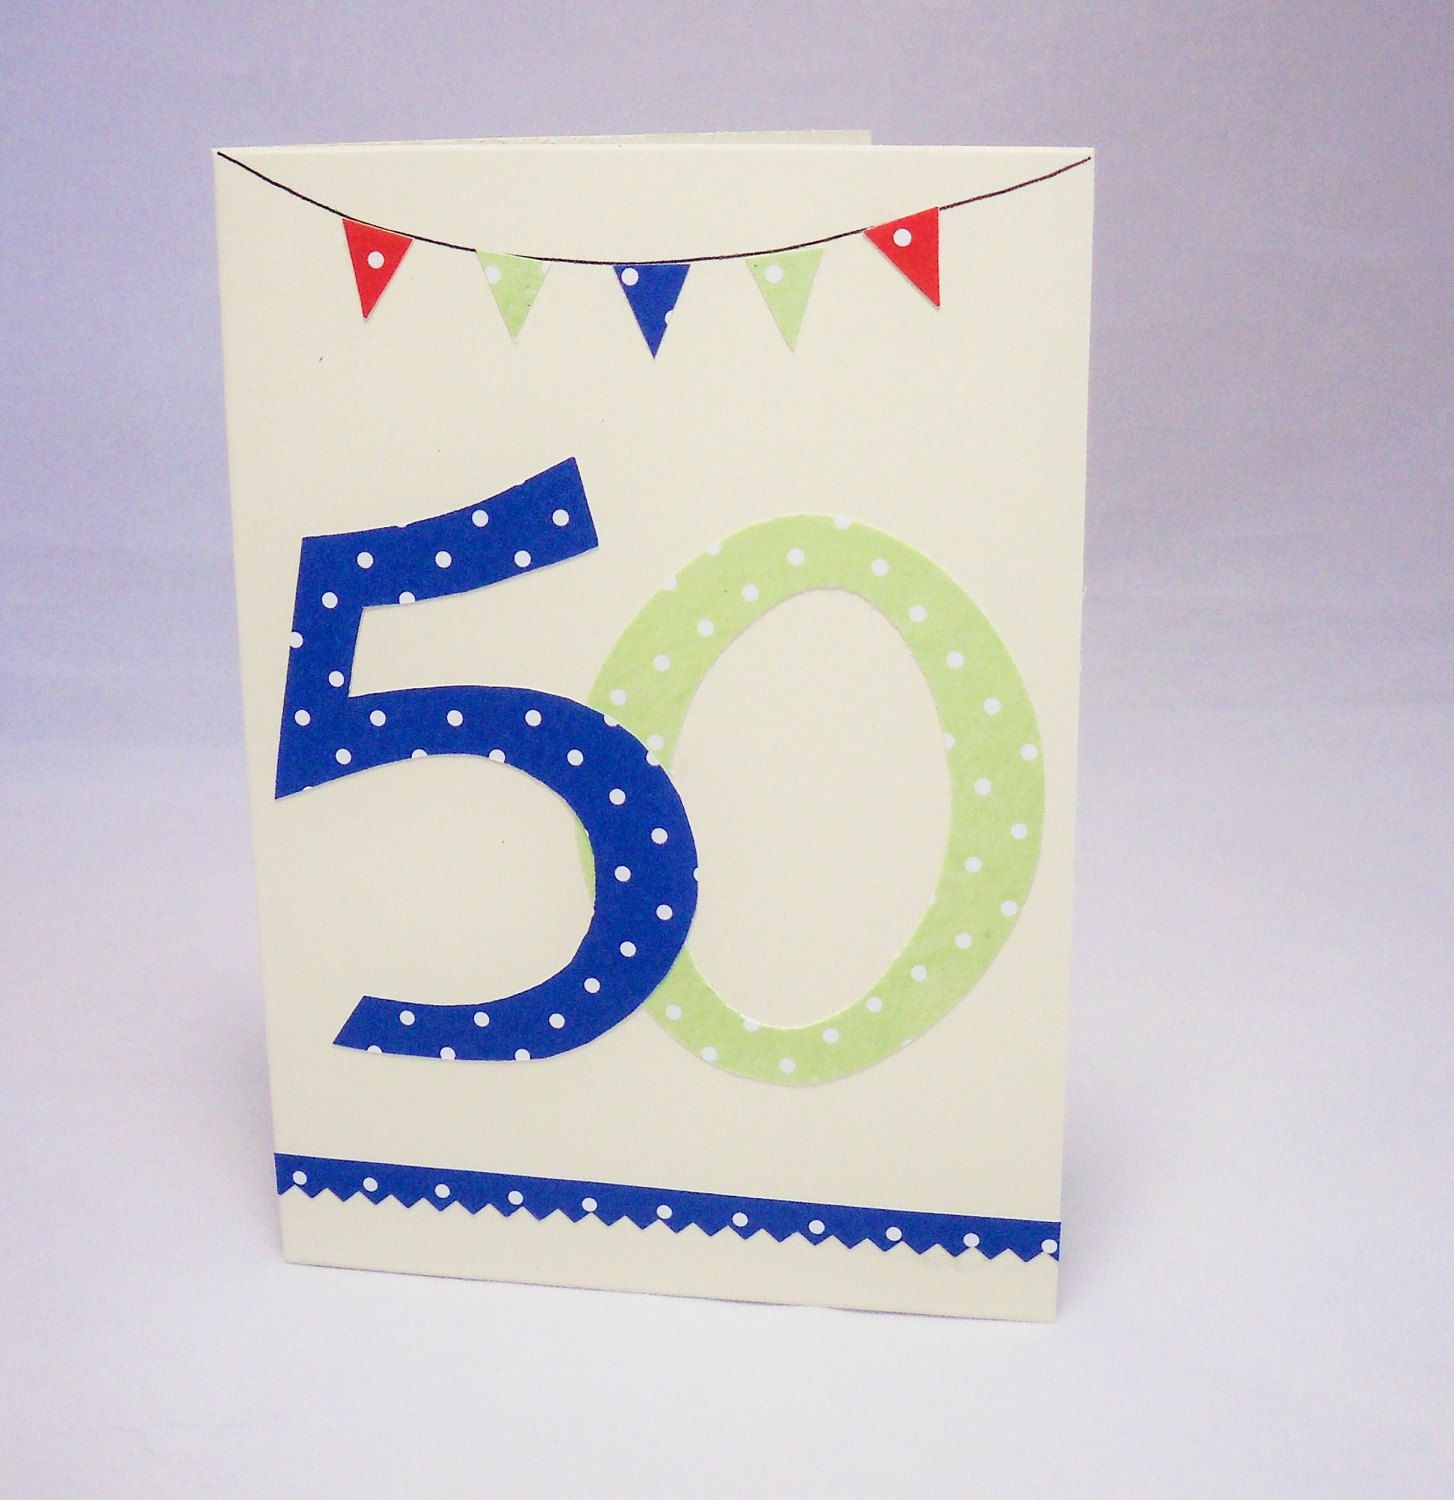 50th birthday 50 card special birthday 50th birthday male 50th 50th birthday 50 card special birthday 50th birthday male 50th number card bunting card 50 card milestone birthday 50th male gift bookmarktalkfo